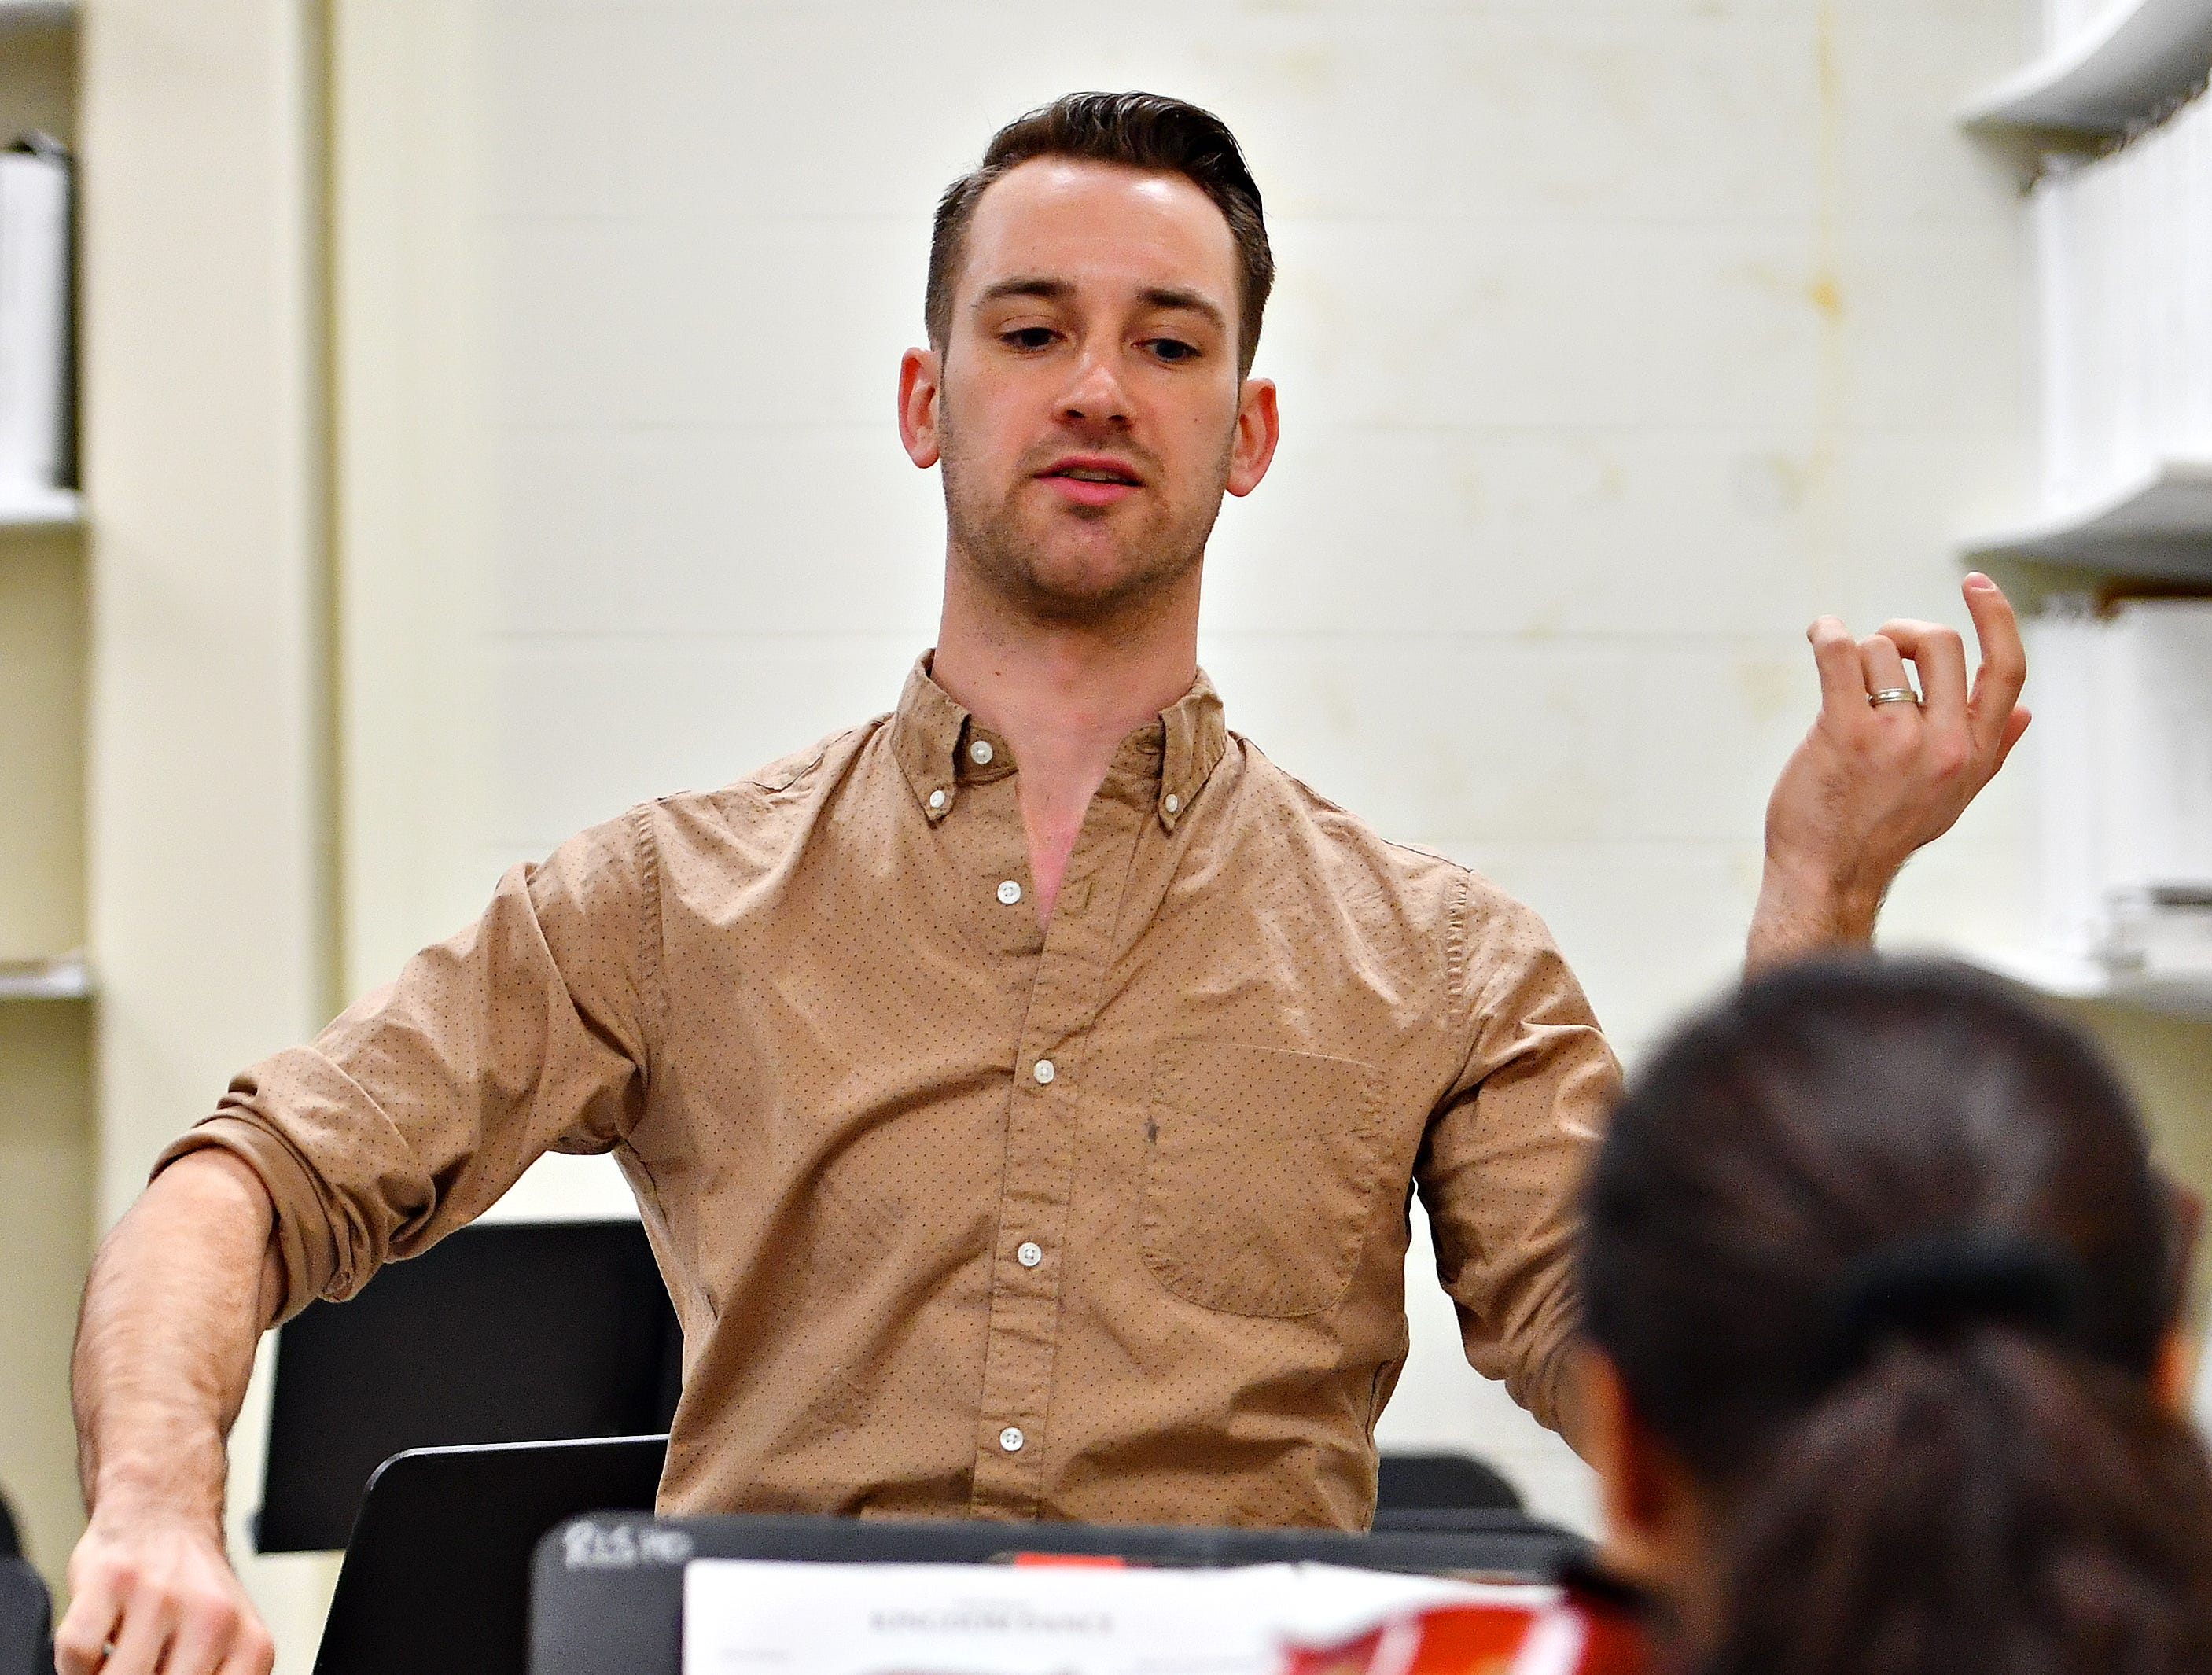 """Red Lion alumnus Derek Cooper, who is a working composer in New York, gestures while working with a student ensemble as they practice """"Kingdom Dance,"""" from the Disney film, """"Tangled,"""" at Red Lion Area High School in Red Lion, Tuesday, March 5, 2019. Dawn J. Sagert photo"""